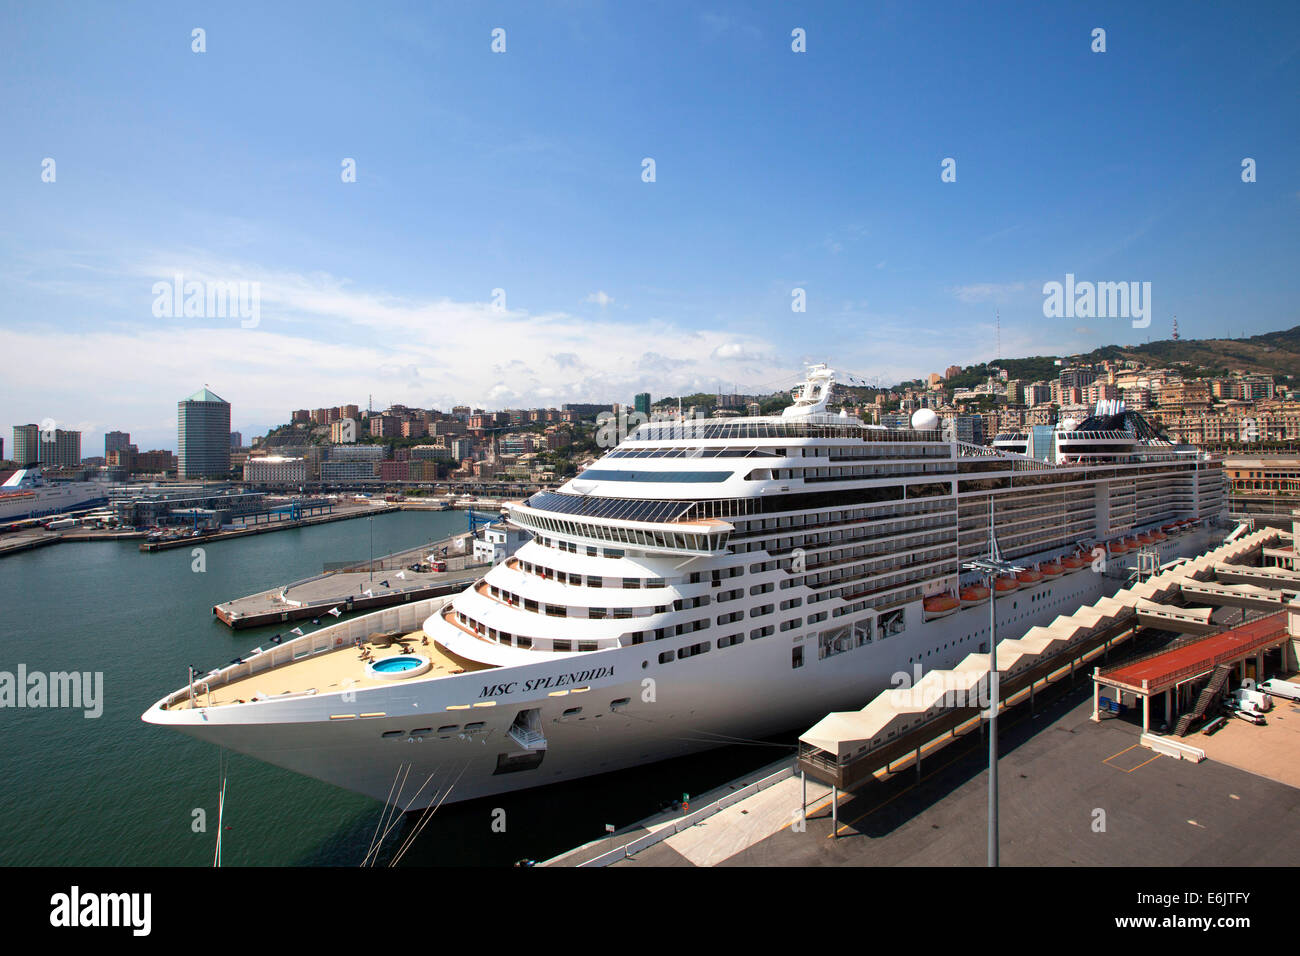 MSC Splendida a Fantasia class cruise ship owned and ...